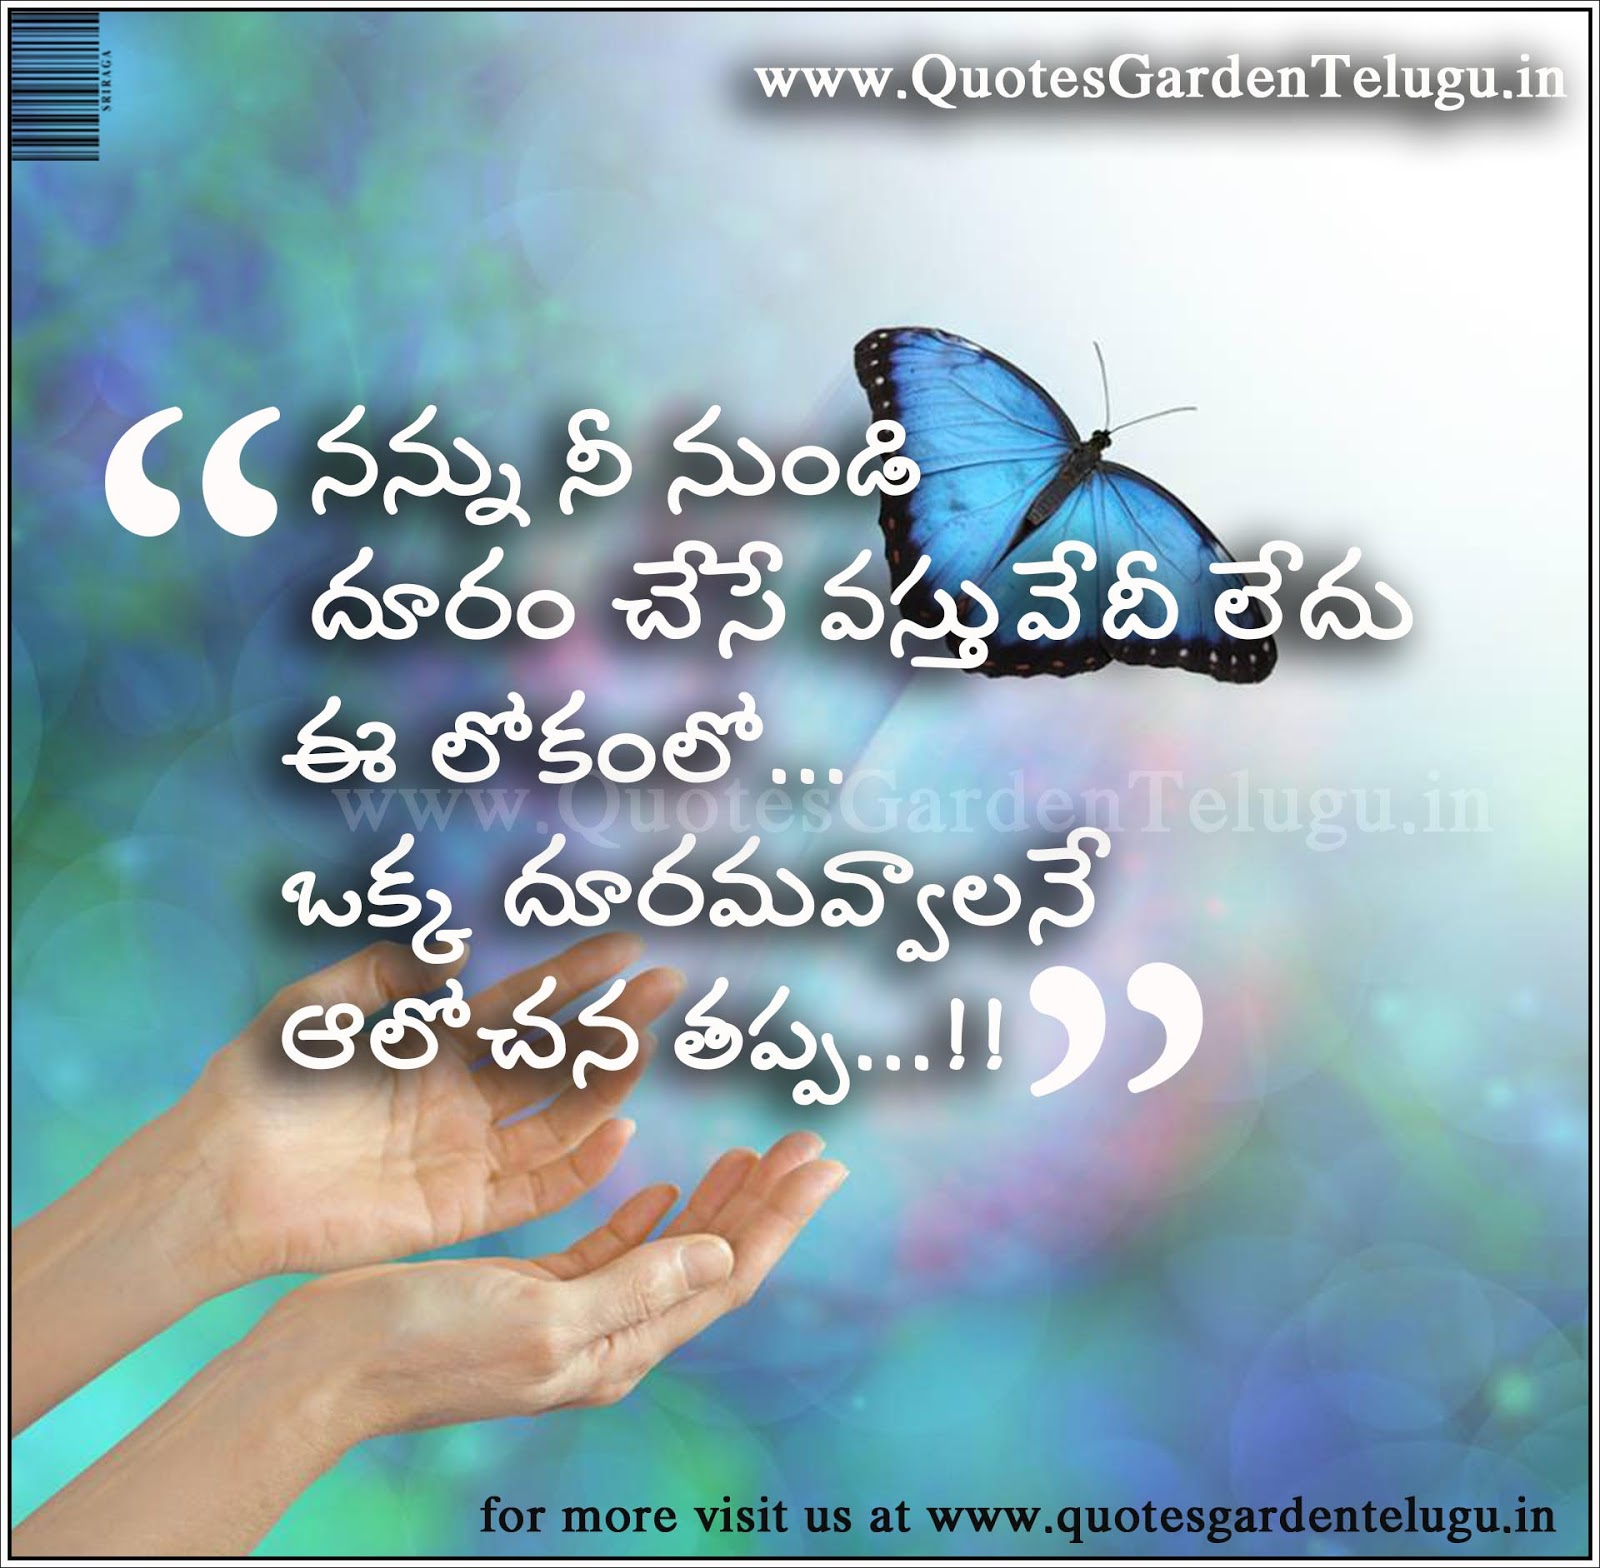 Telugu Love Quotes Prepossessing Best Telugu Heart Touching Love Quotes With Hd Images 652  Quotes